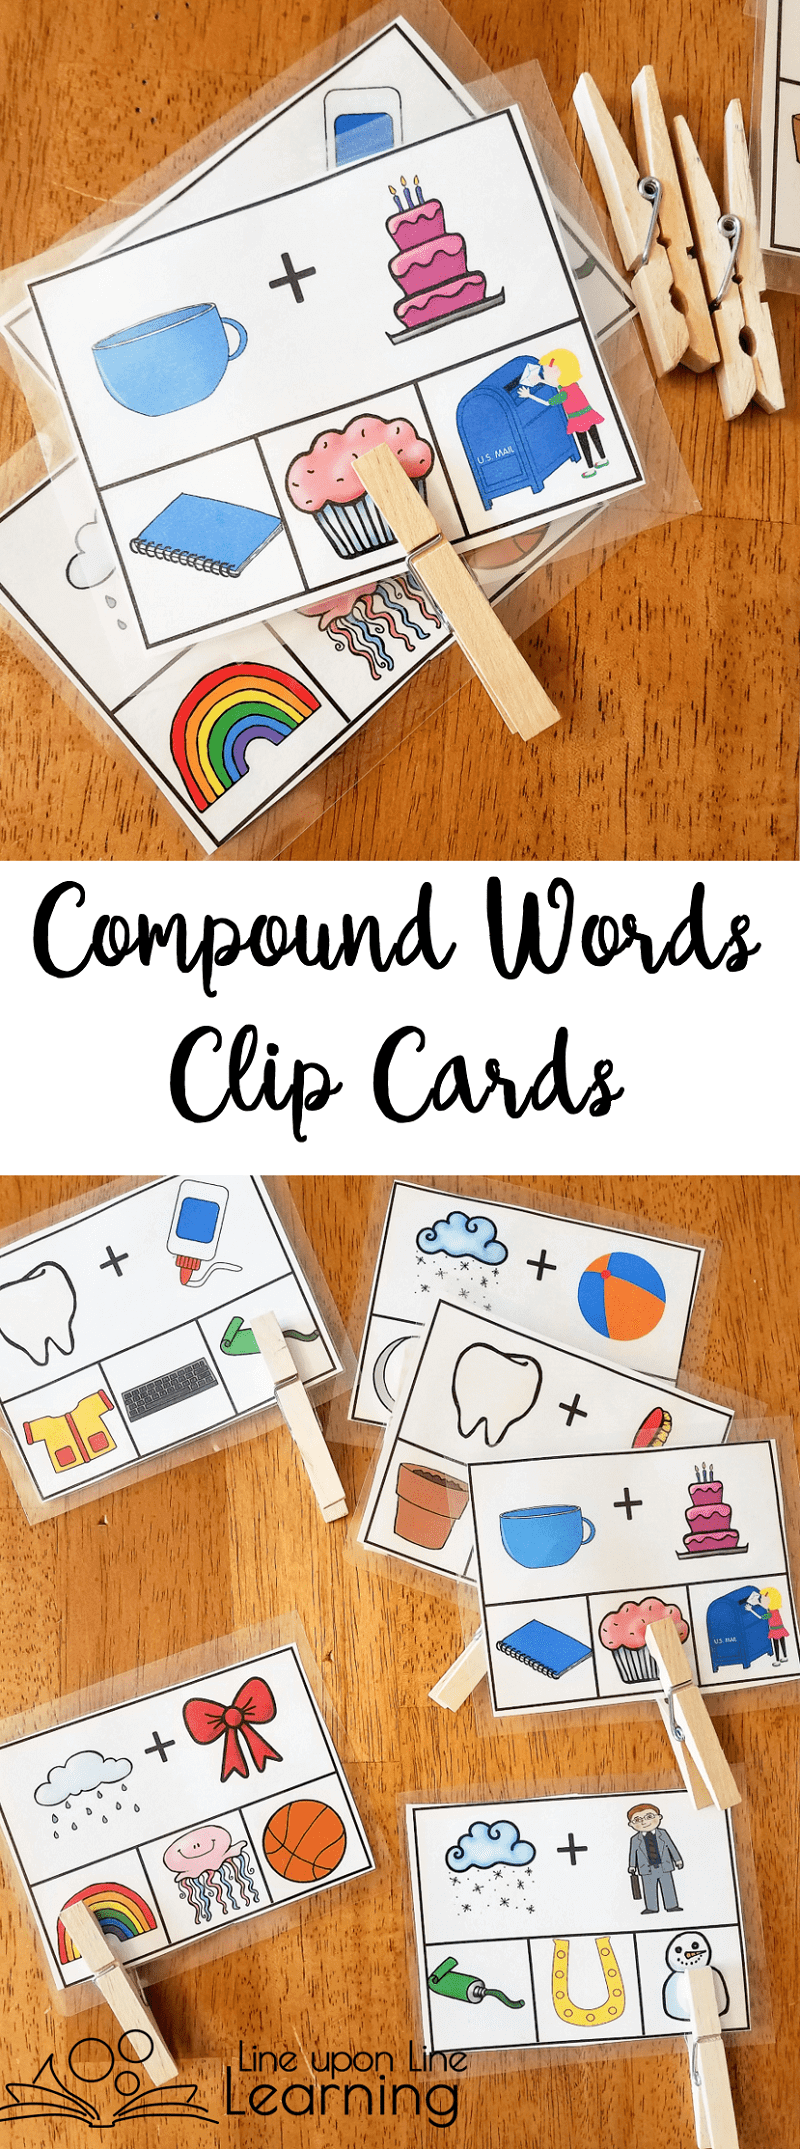 Compound Words Activities Pre Reading Skills Compound Words Activities Compound Words Word Activities [ 2149 x 800 Pixel ]